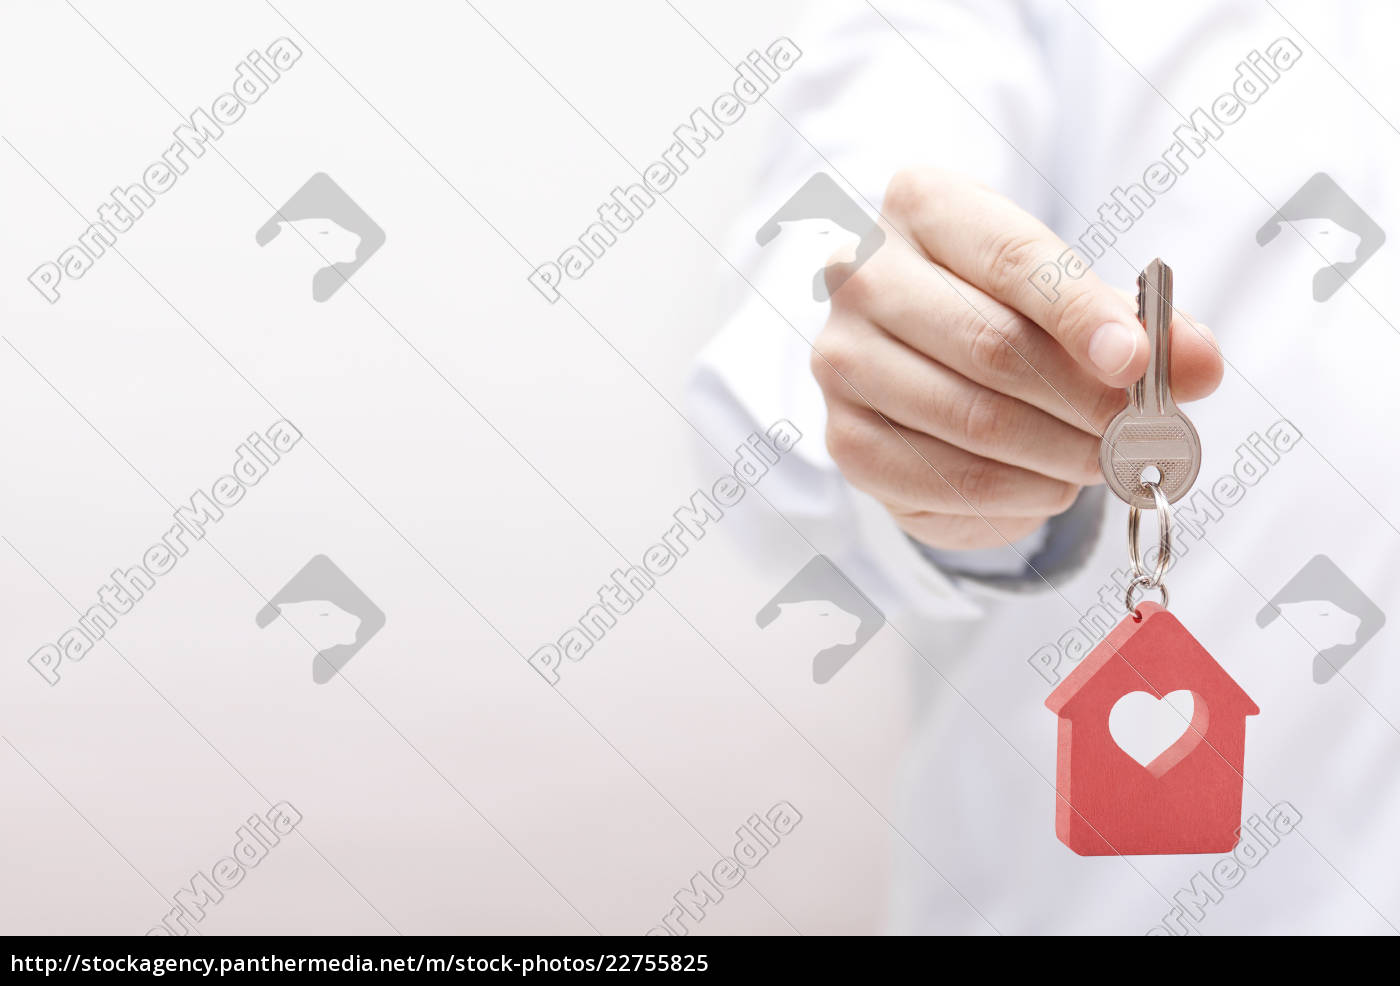 house, key, with, heart, in, hand - 22755825